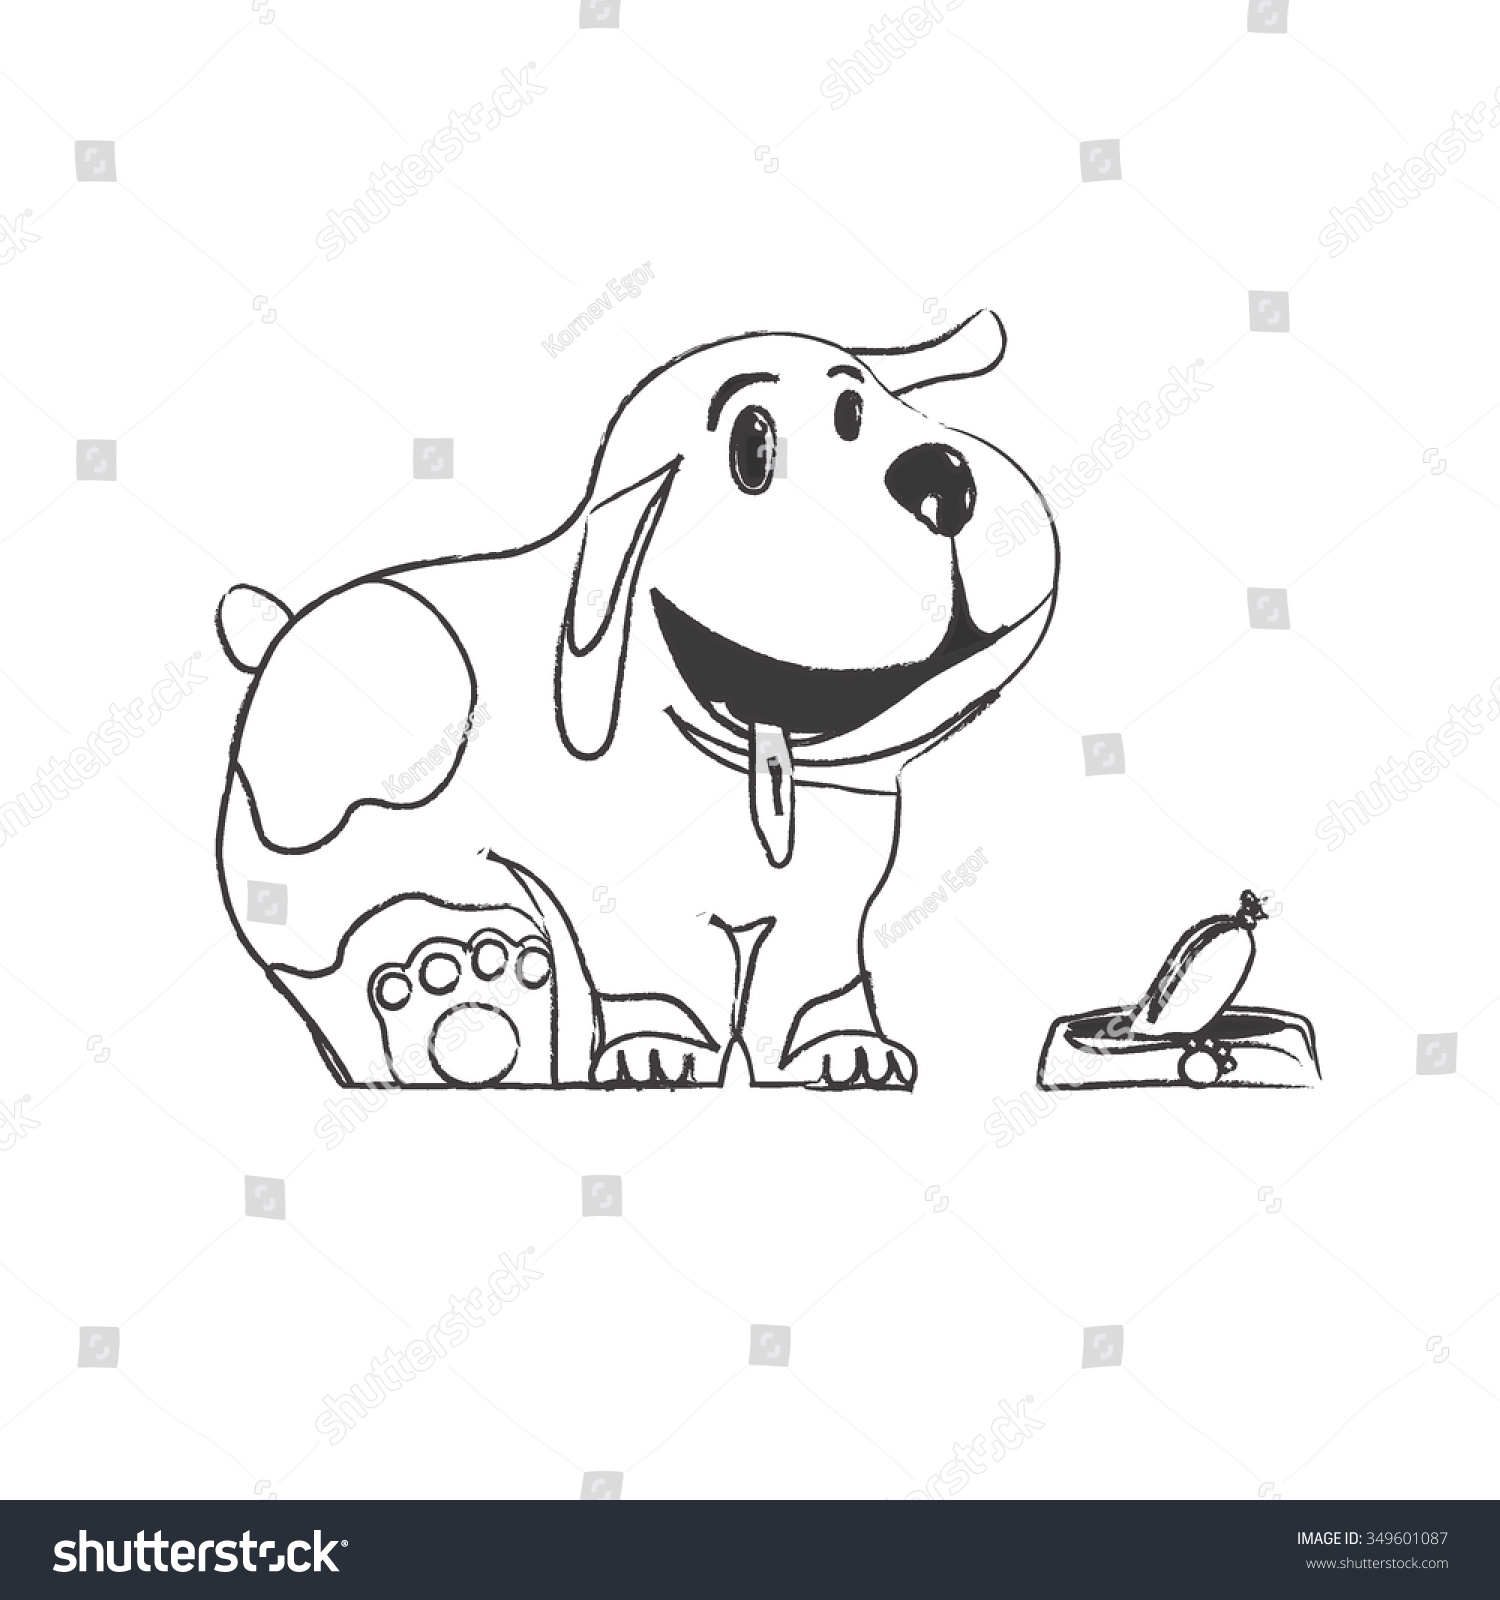 Pencil sketch of a seated puppy with a happy face next to the bowl with sausage